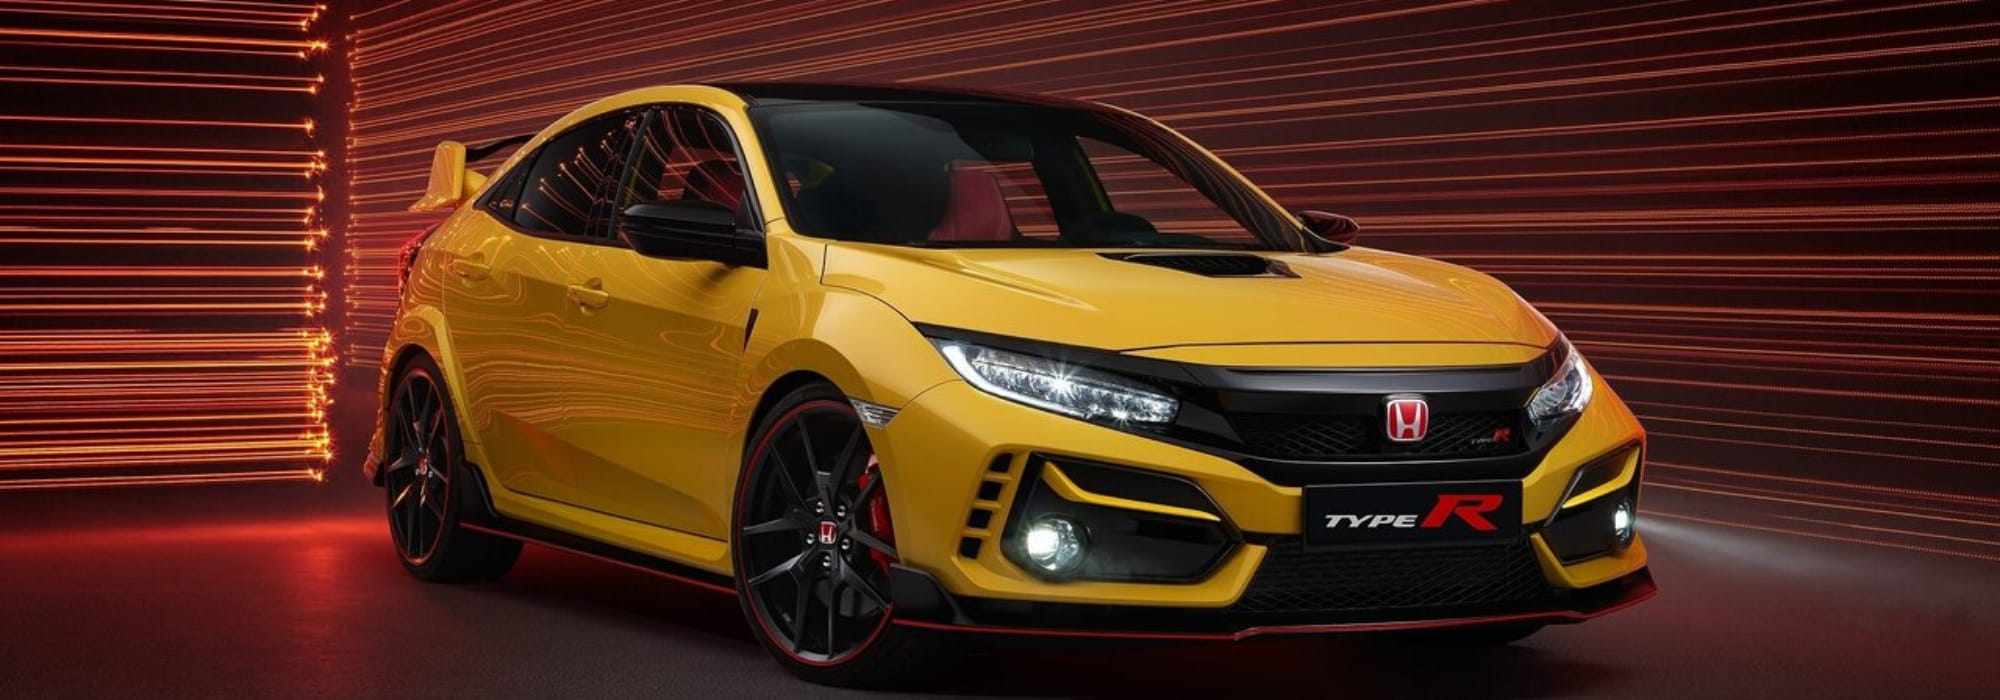 2021 Honda Civic Type R Limited Edition exterior hero image